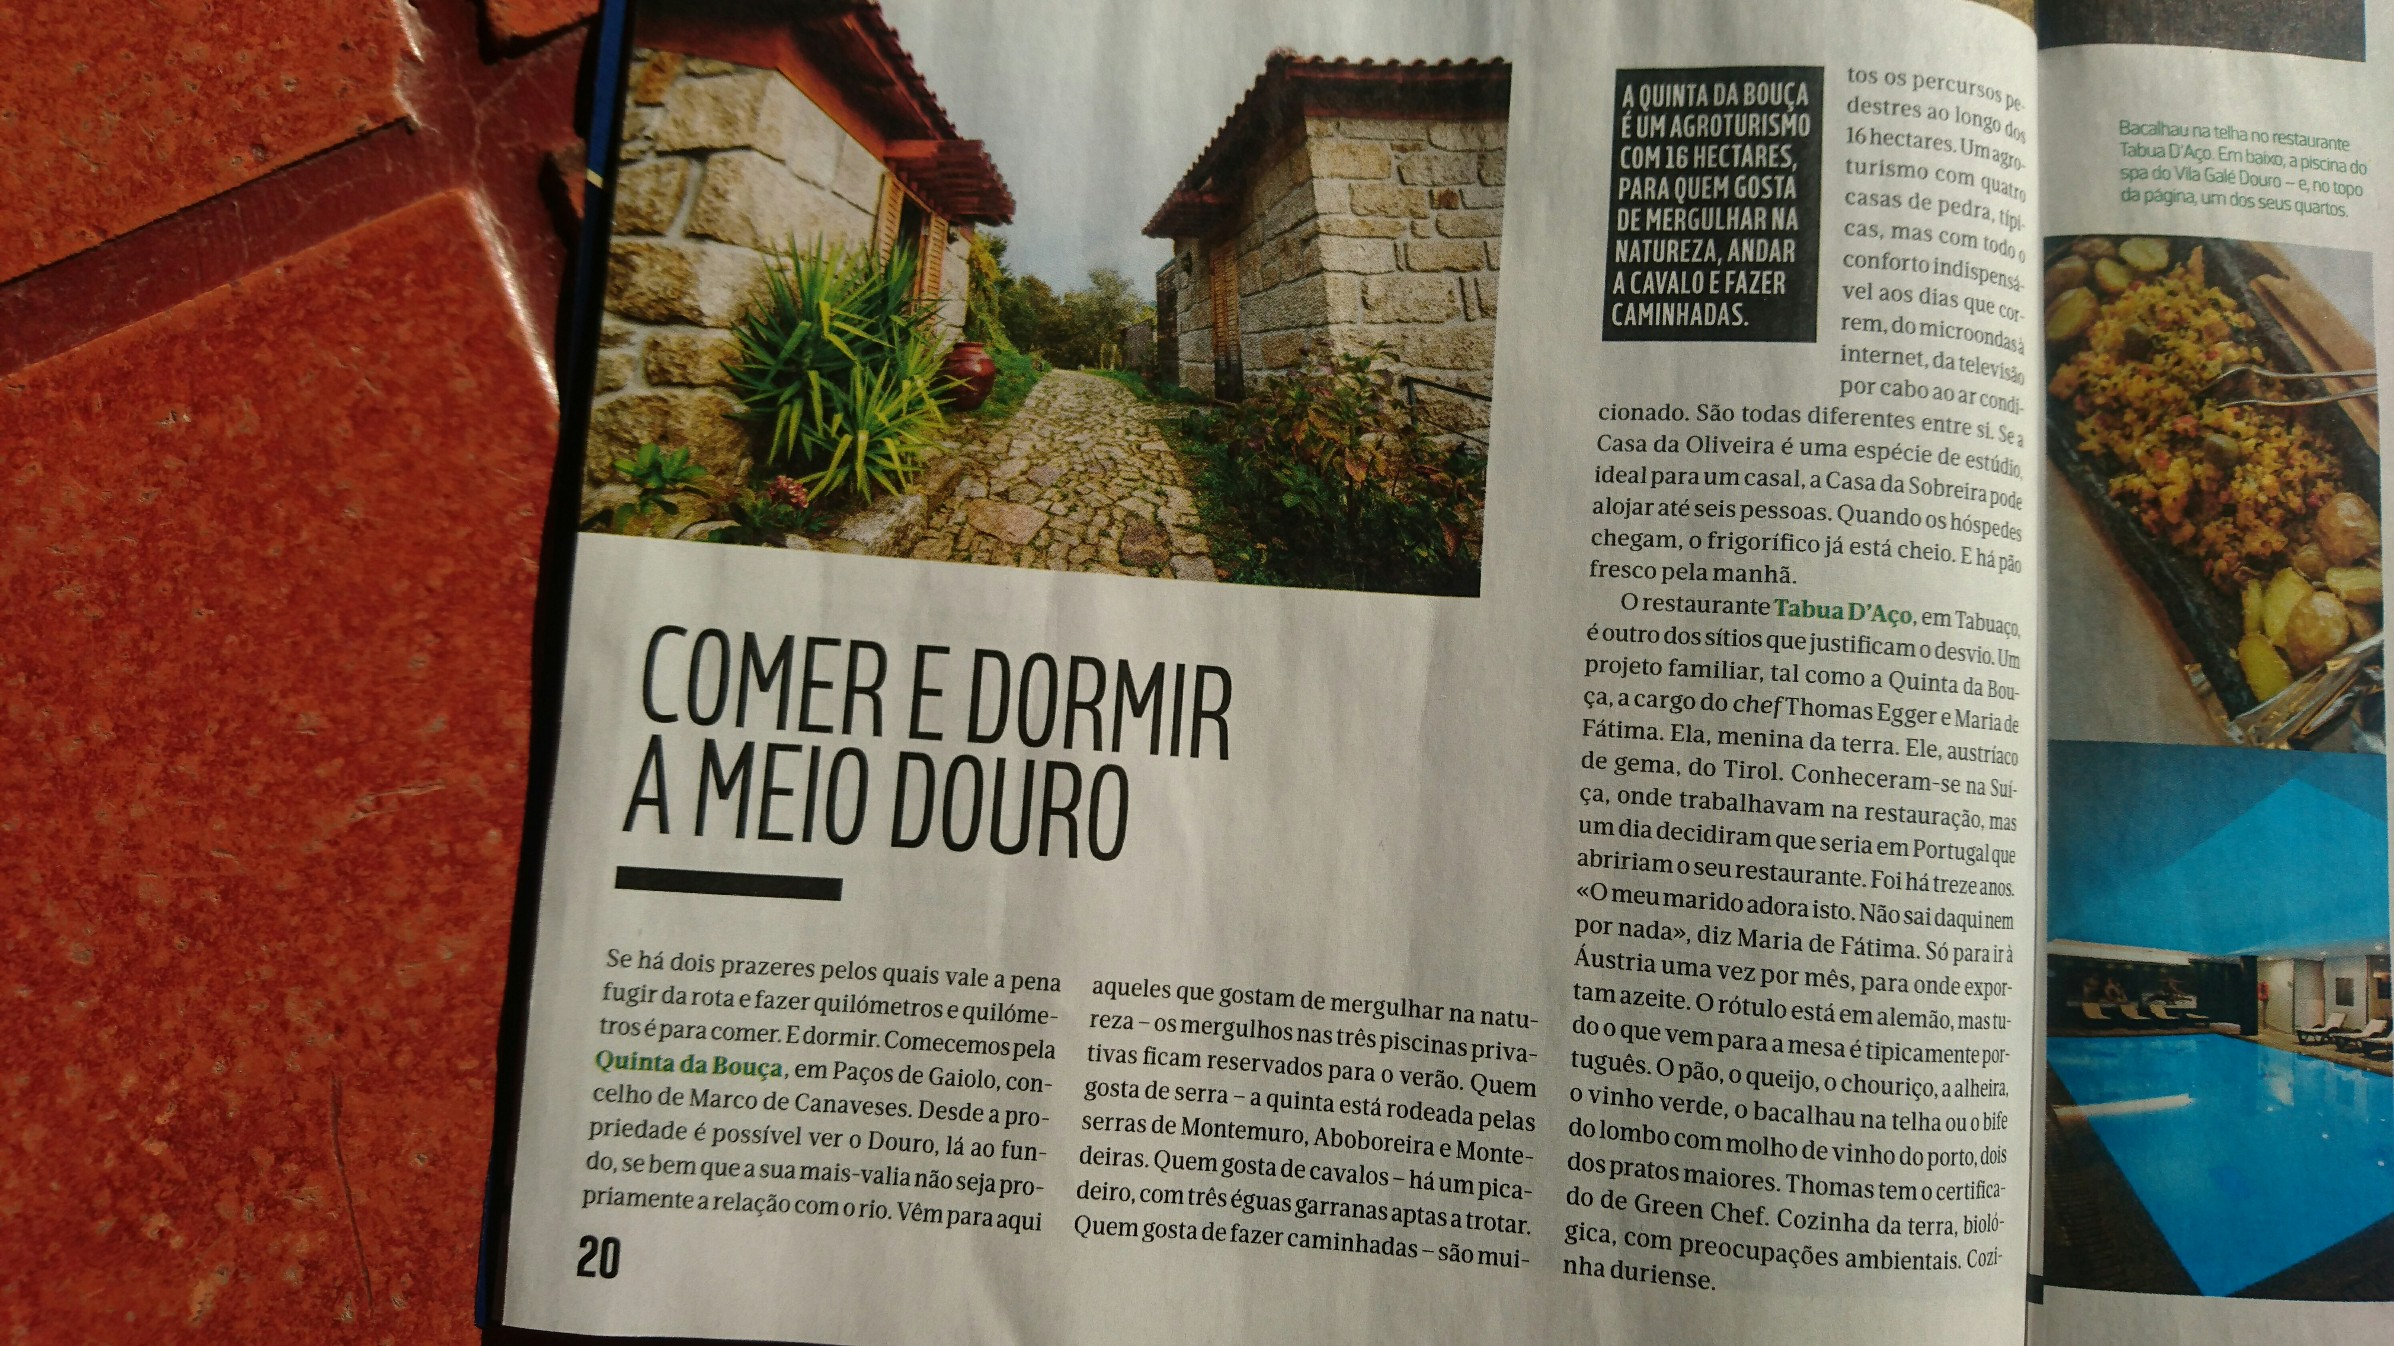 evasões magazine 09-12-2016 winter time in douro